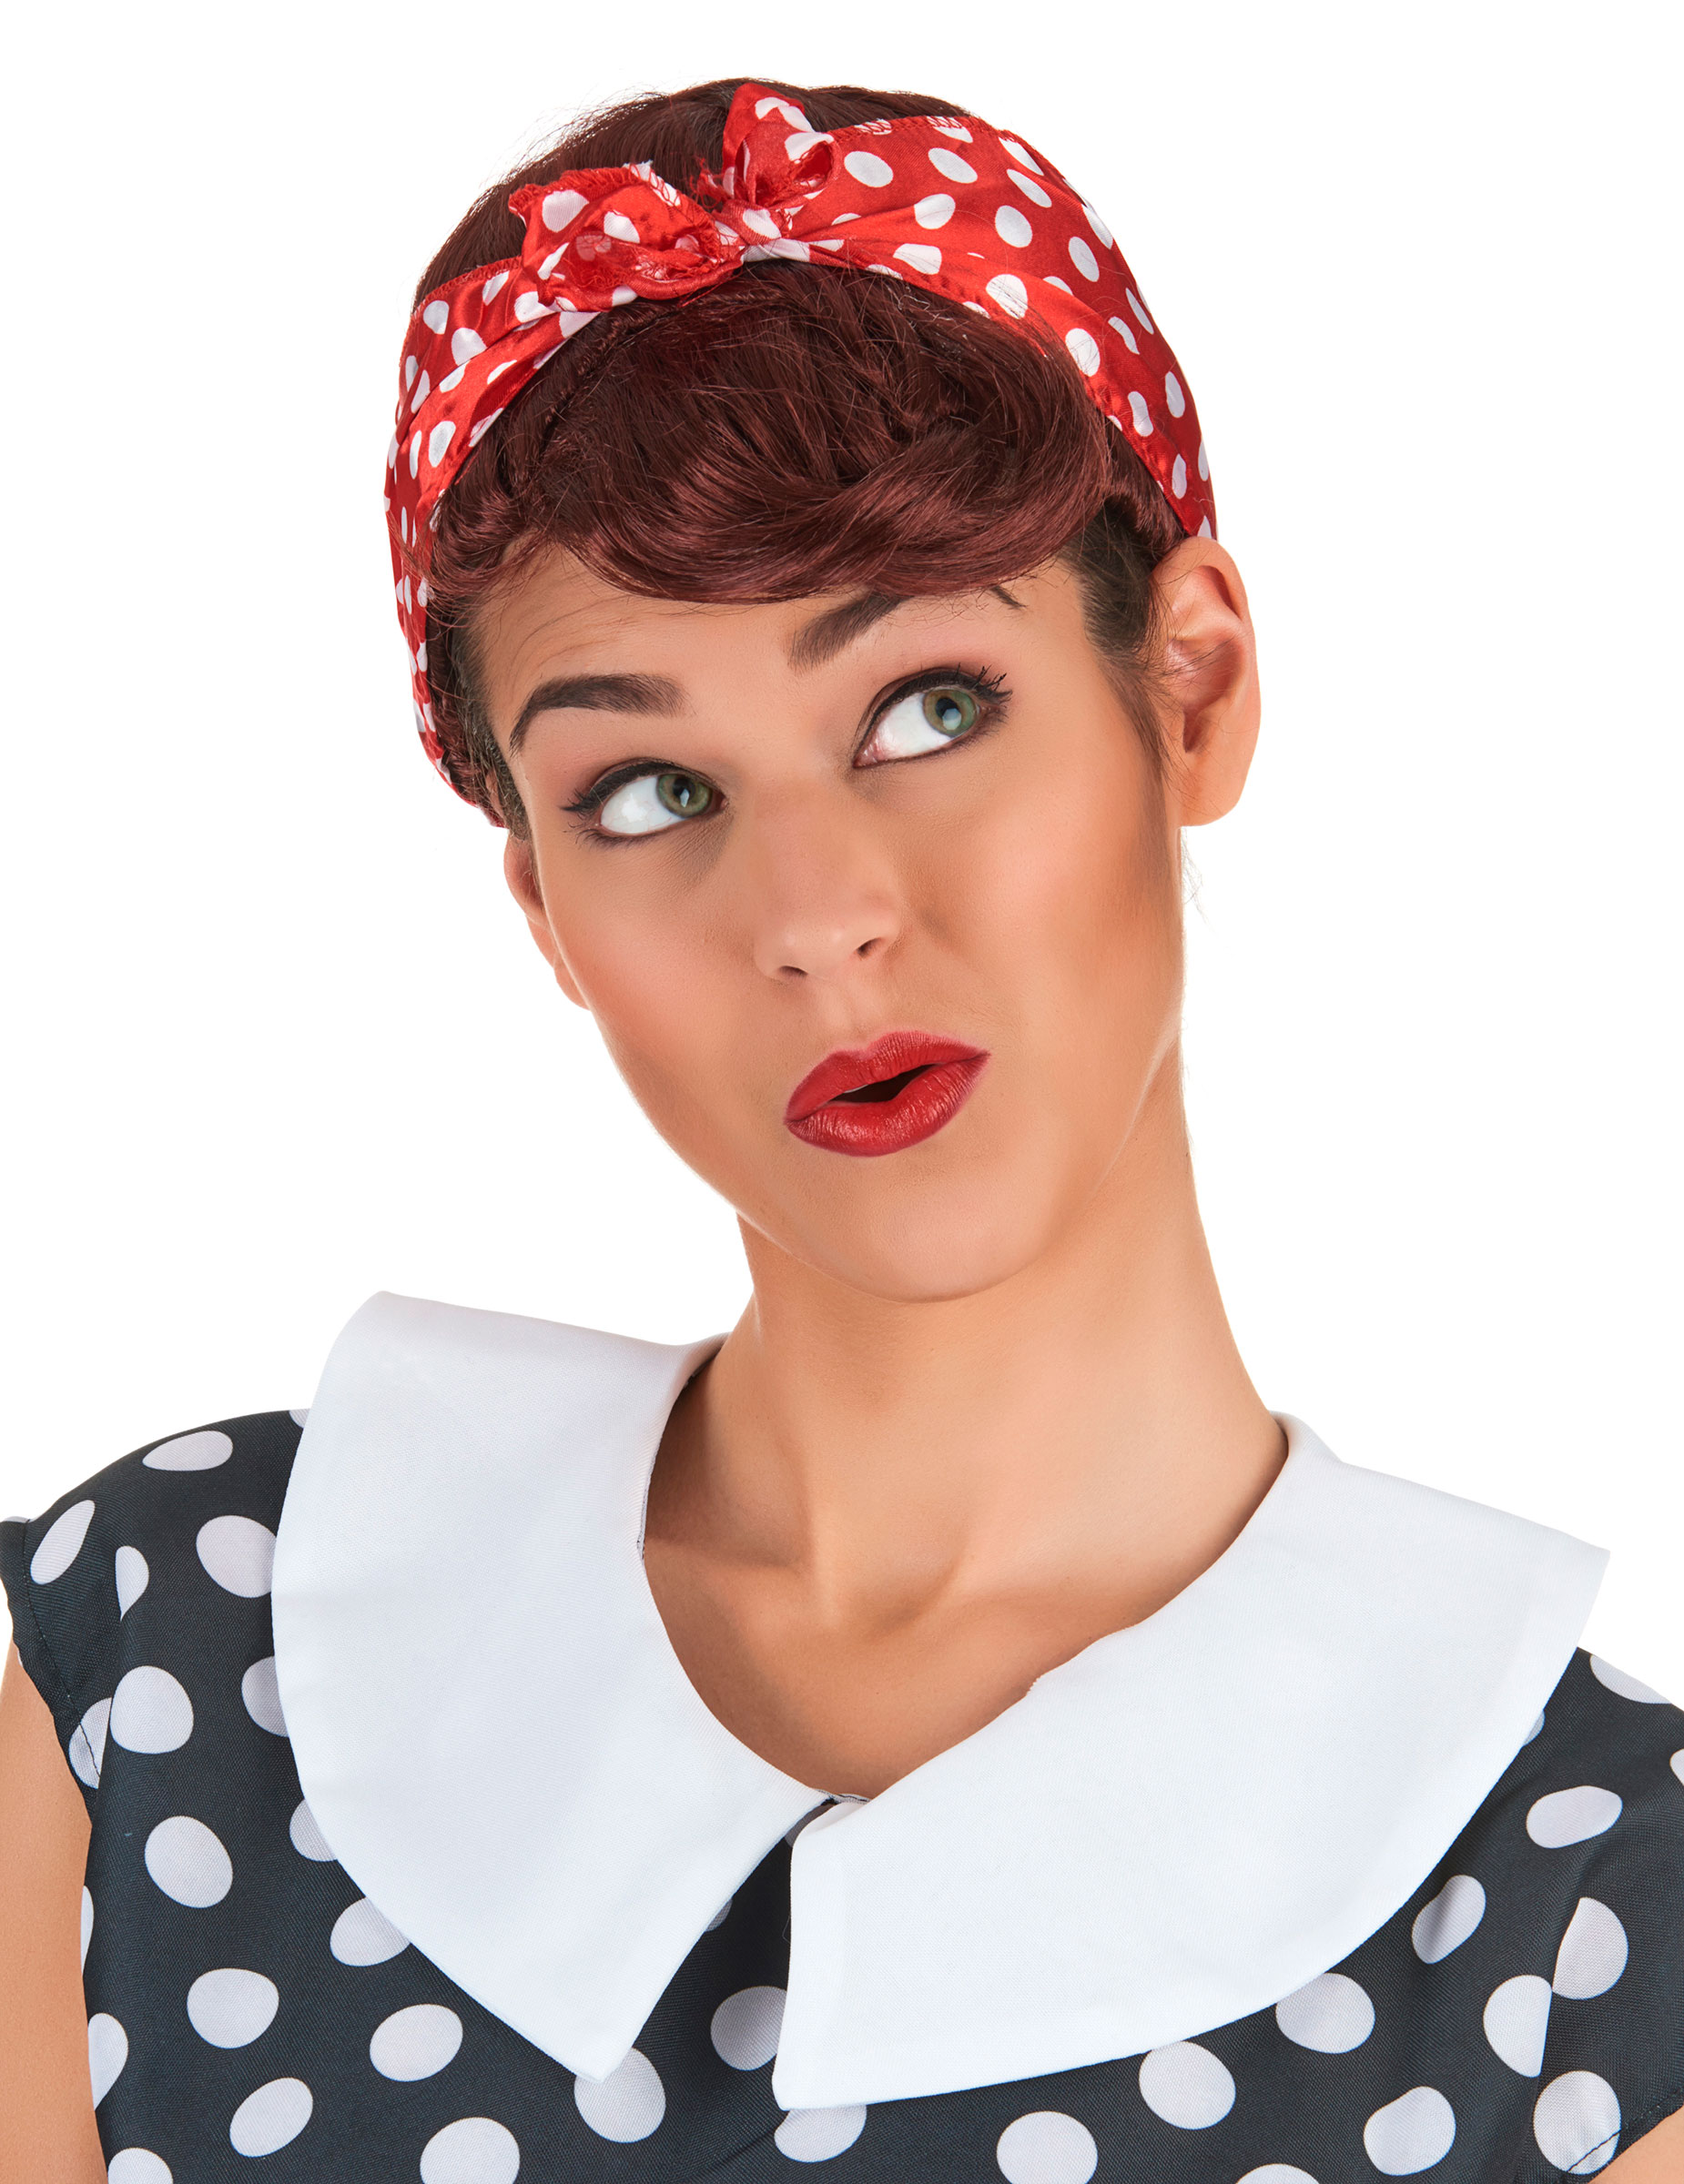 Perruque chatain pin up femme achat de perruques sur vegaoopro grossiste en d guisements - Femme pin up ...